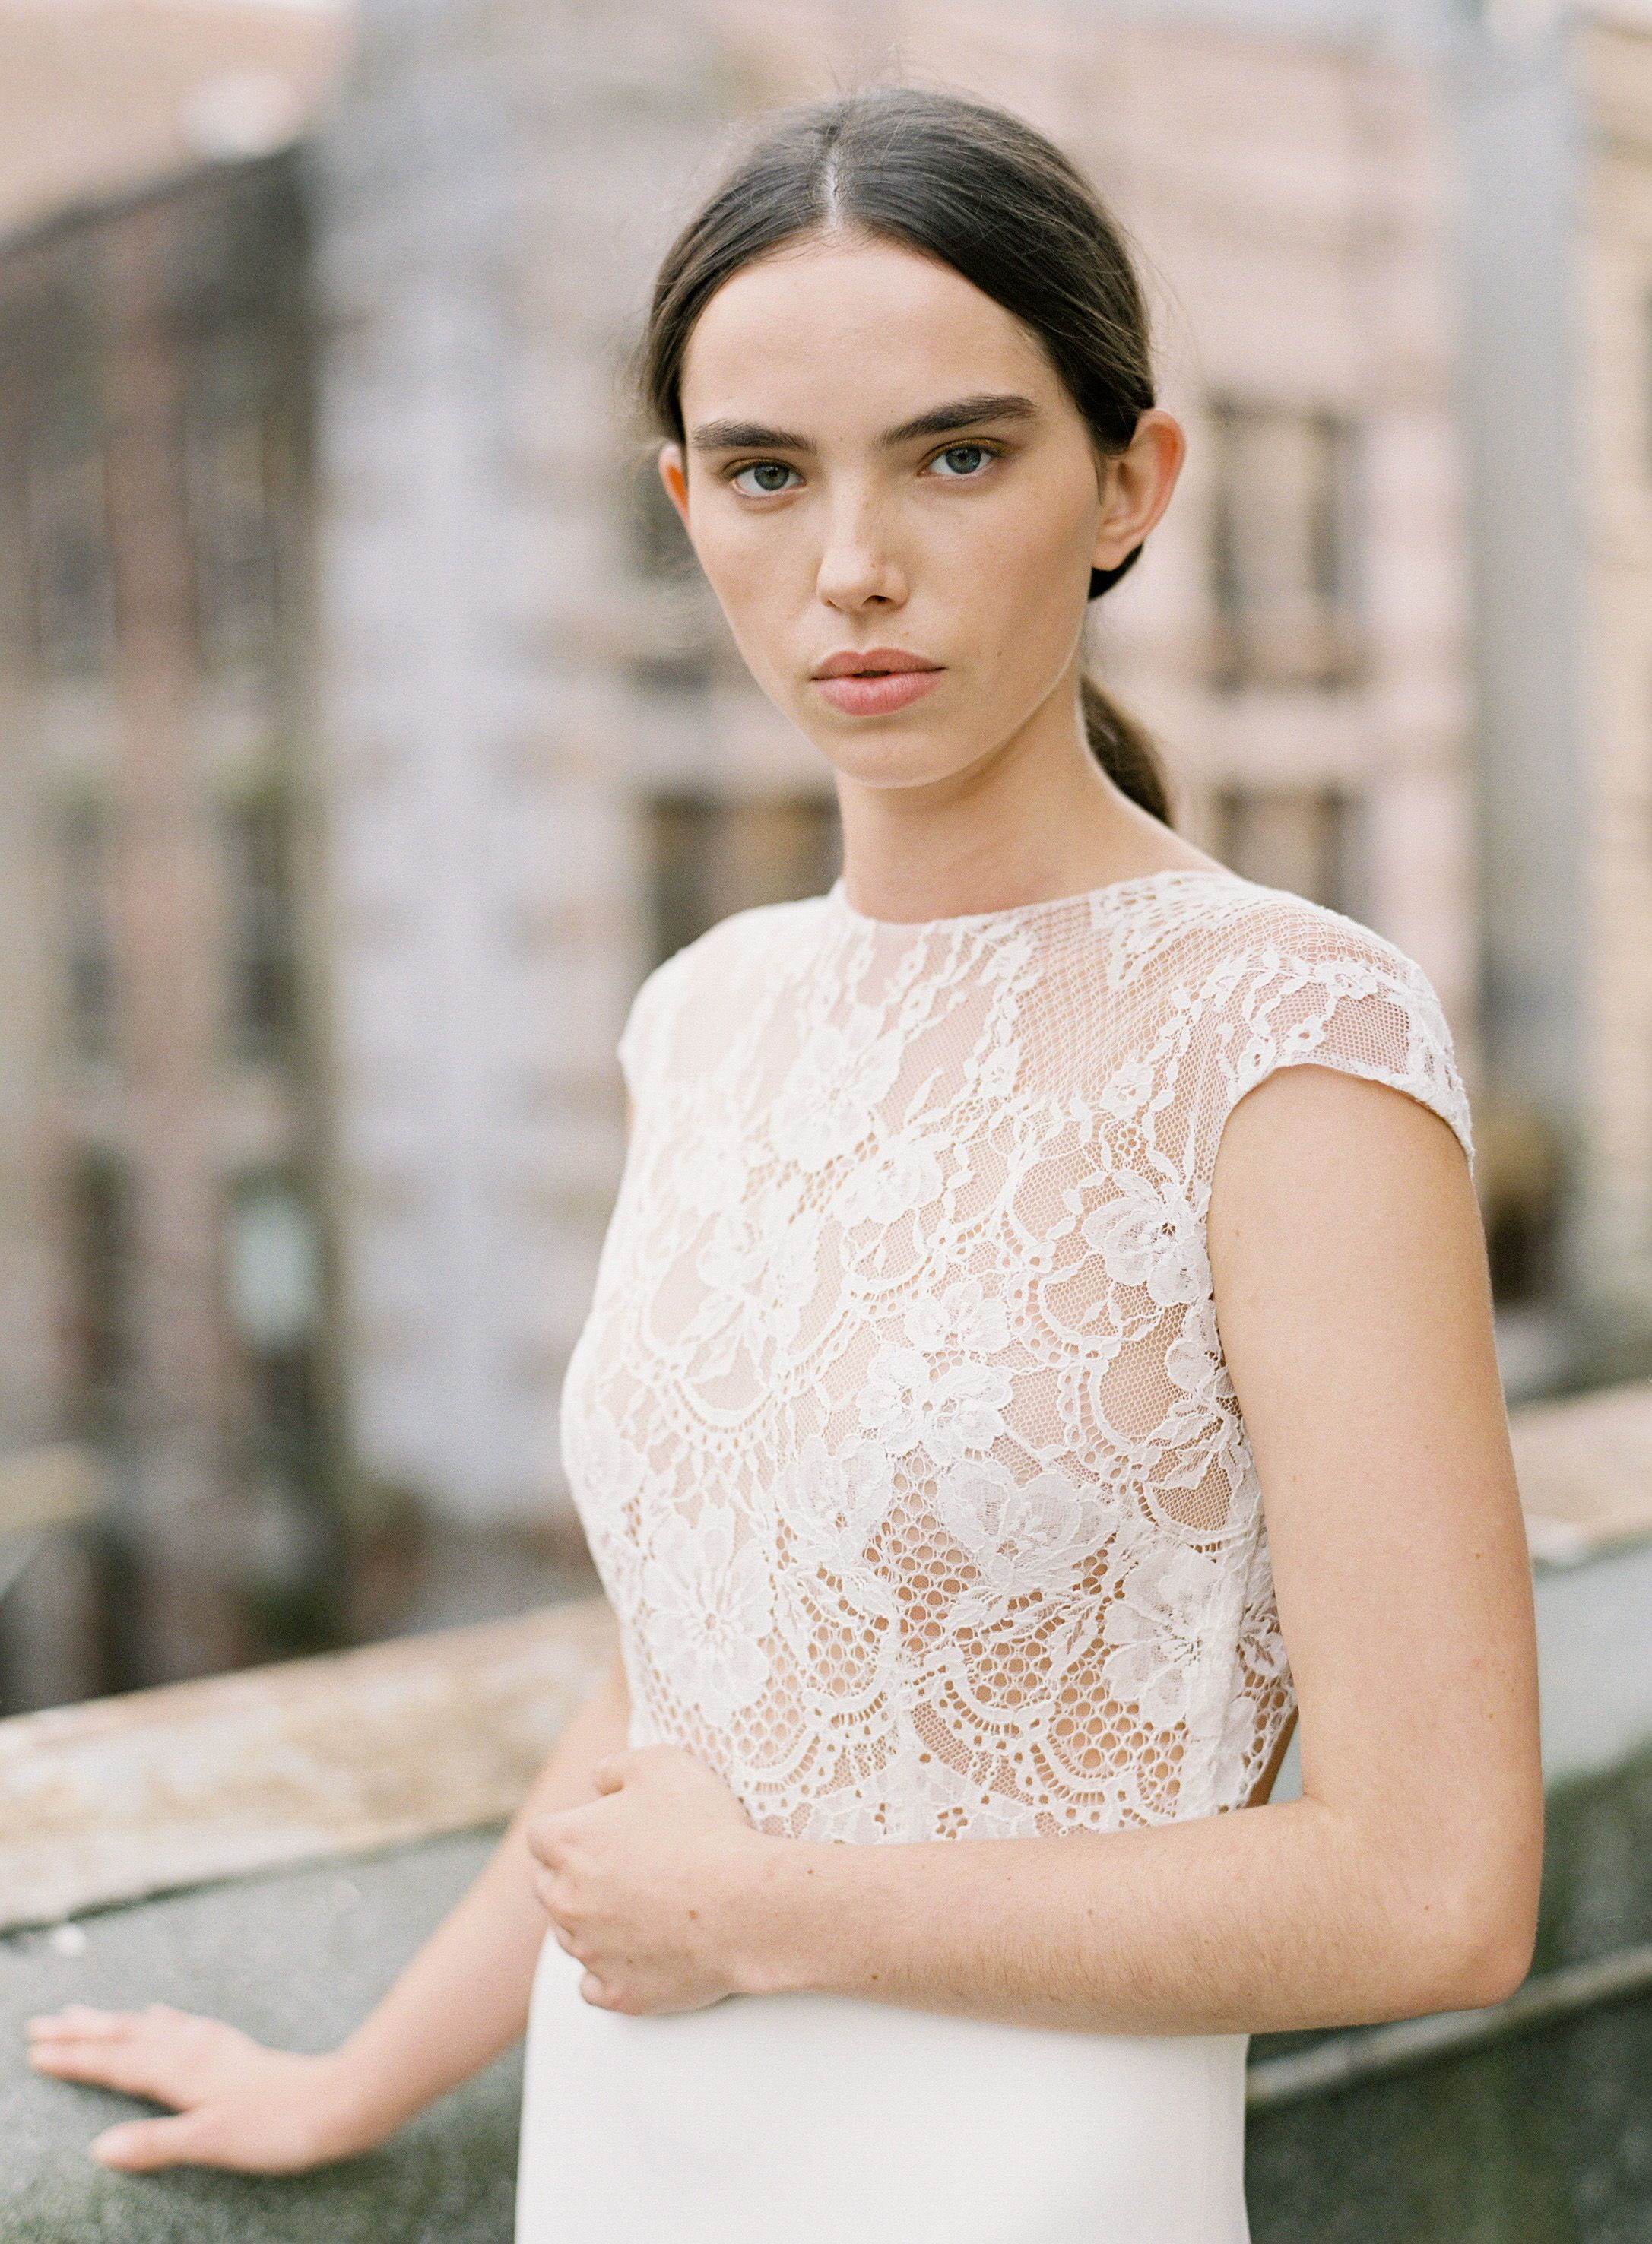 Emerson By Anais Anette 2018 Collection Lace Wedding Dress Short Sleeve Fitted Short Lace Wedding Dress Amazing Wedding Dress Short Sleeve Wedding Dress [ 2952 x 2173 Pixel ]